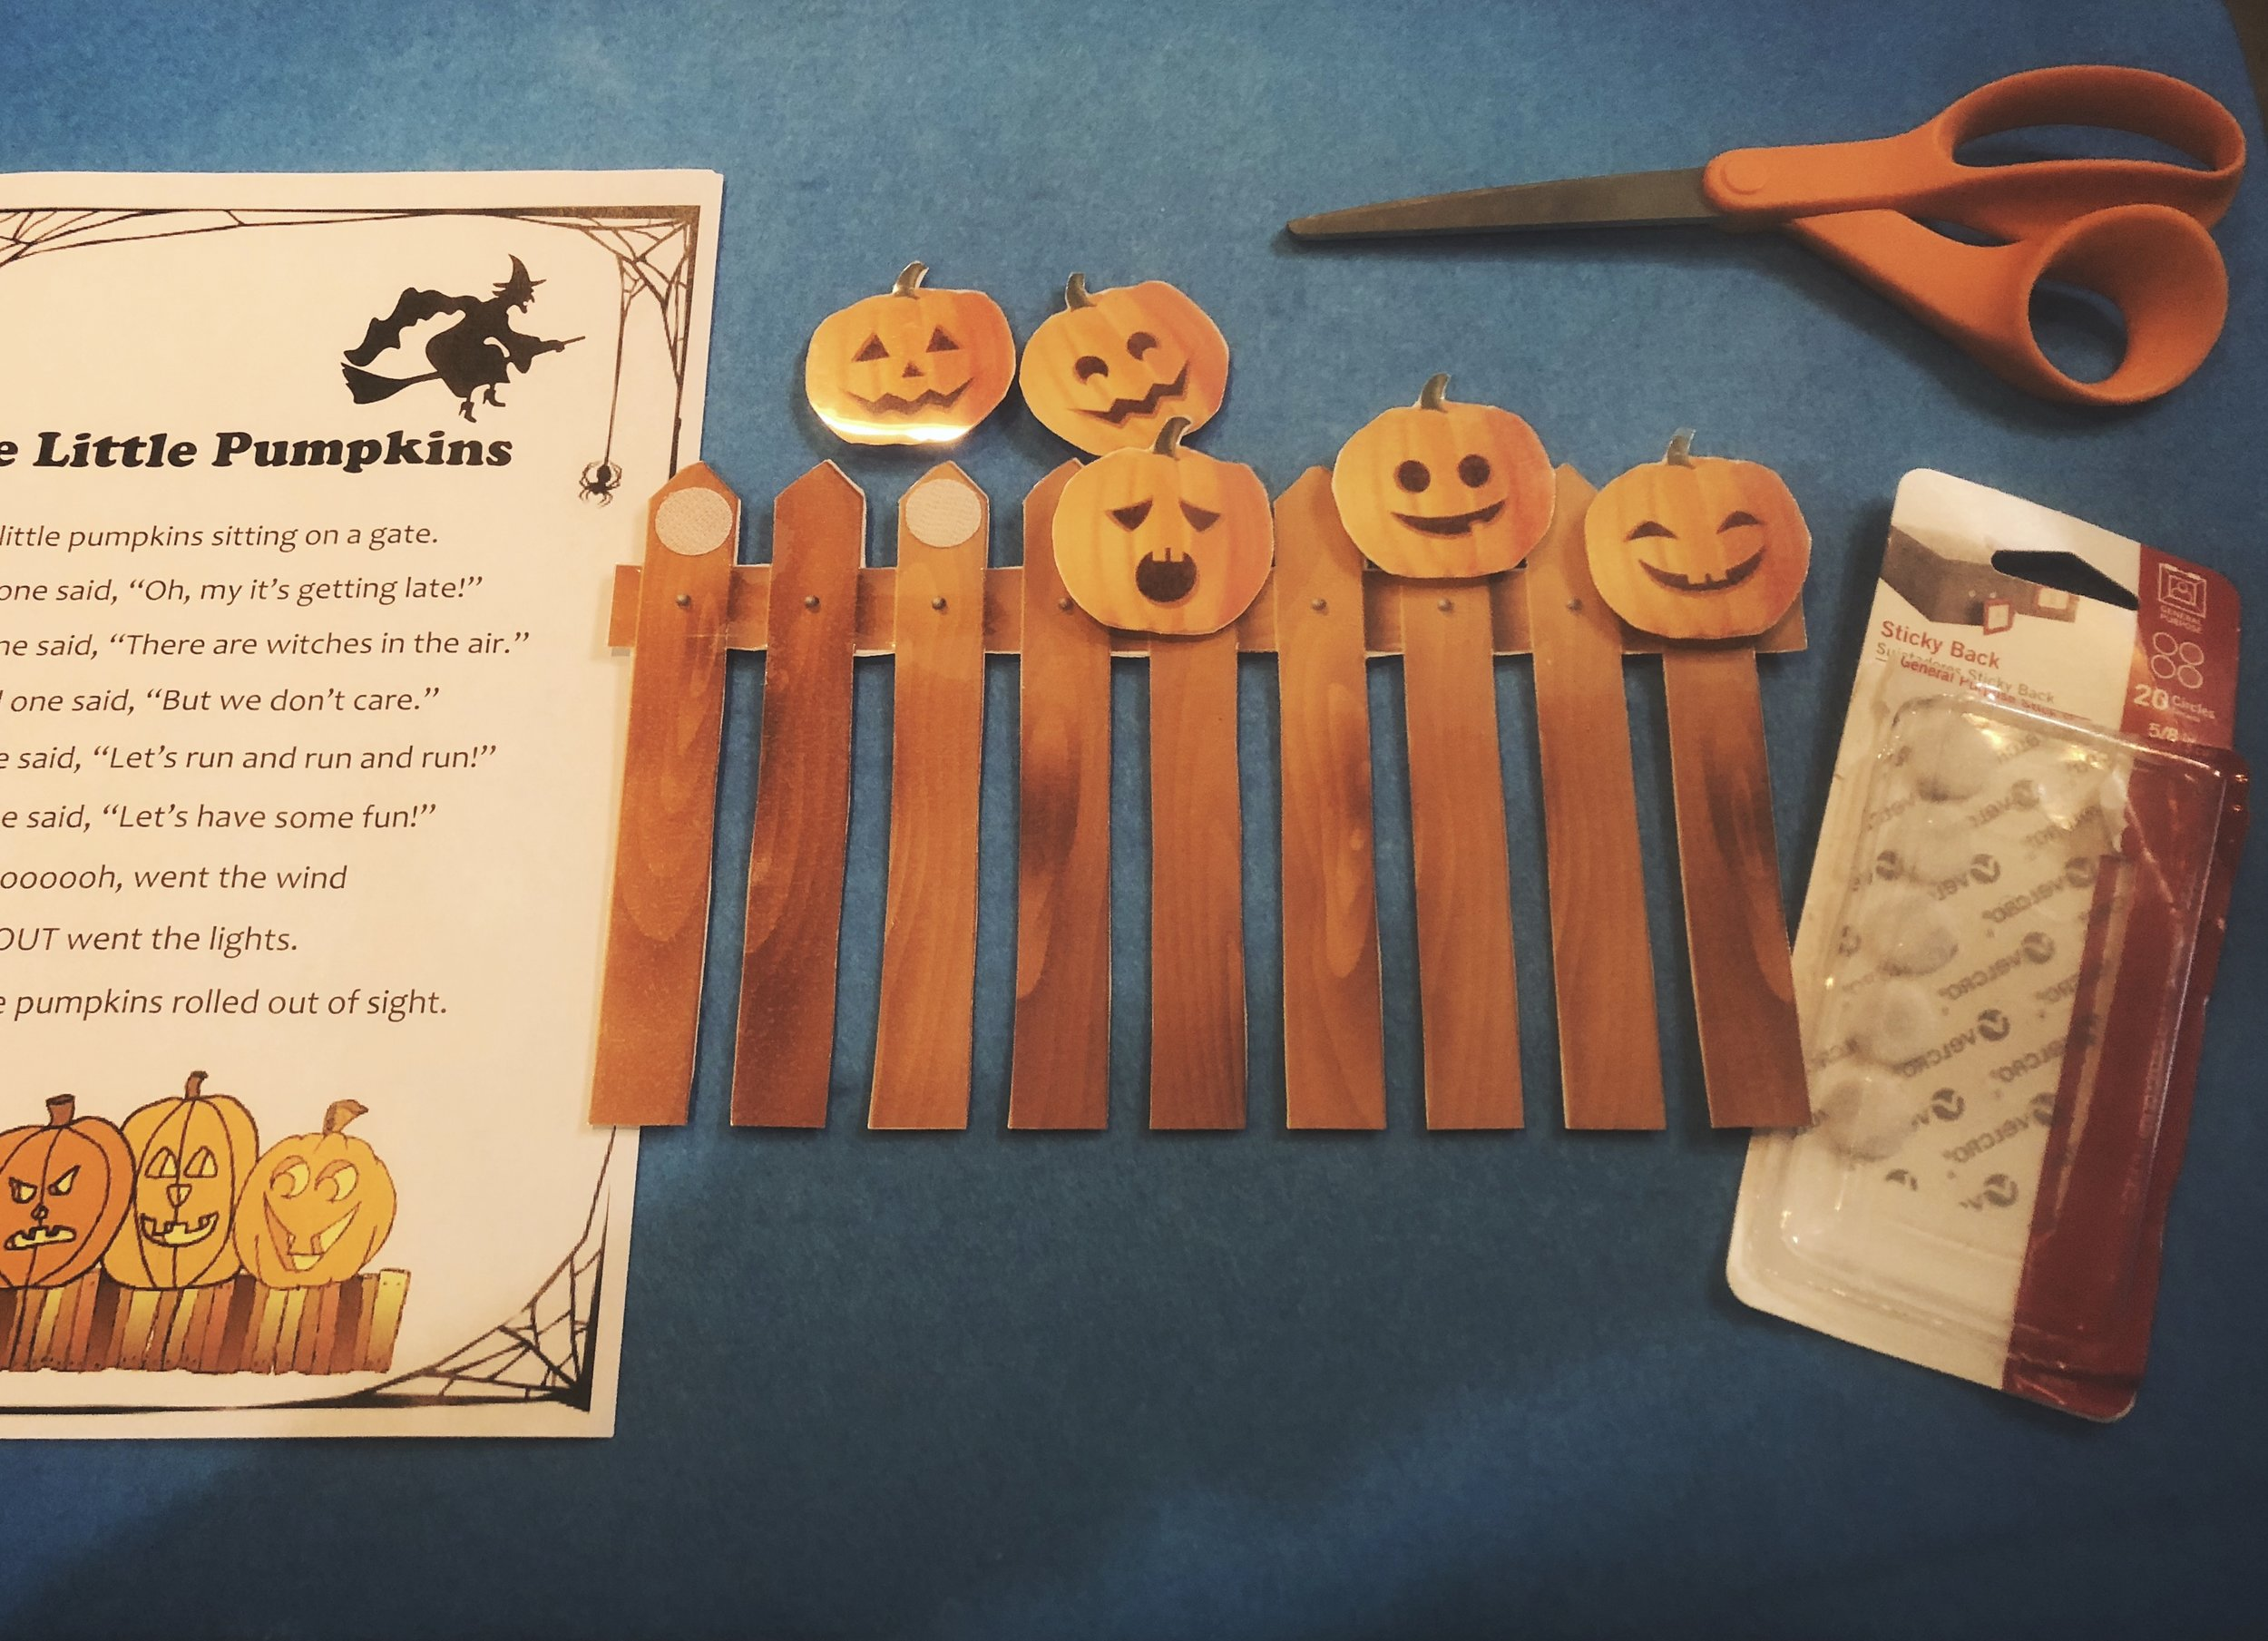 diy-five-little-pumpkins-activity2.jpg